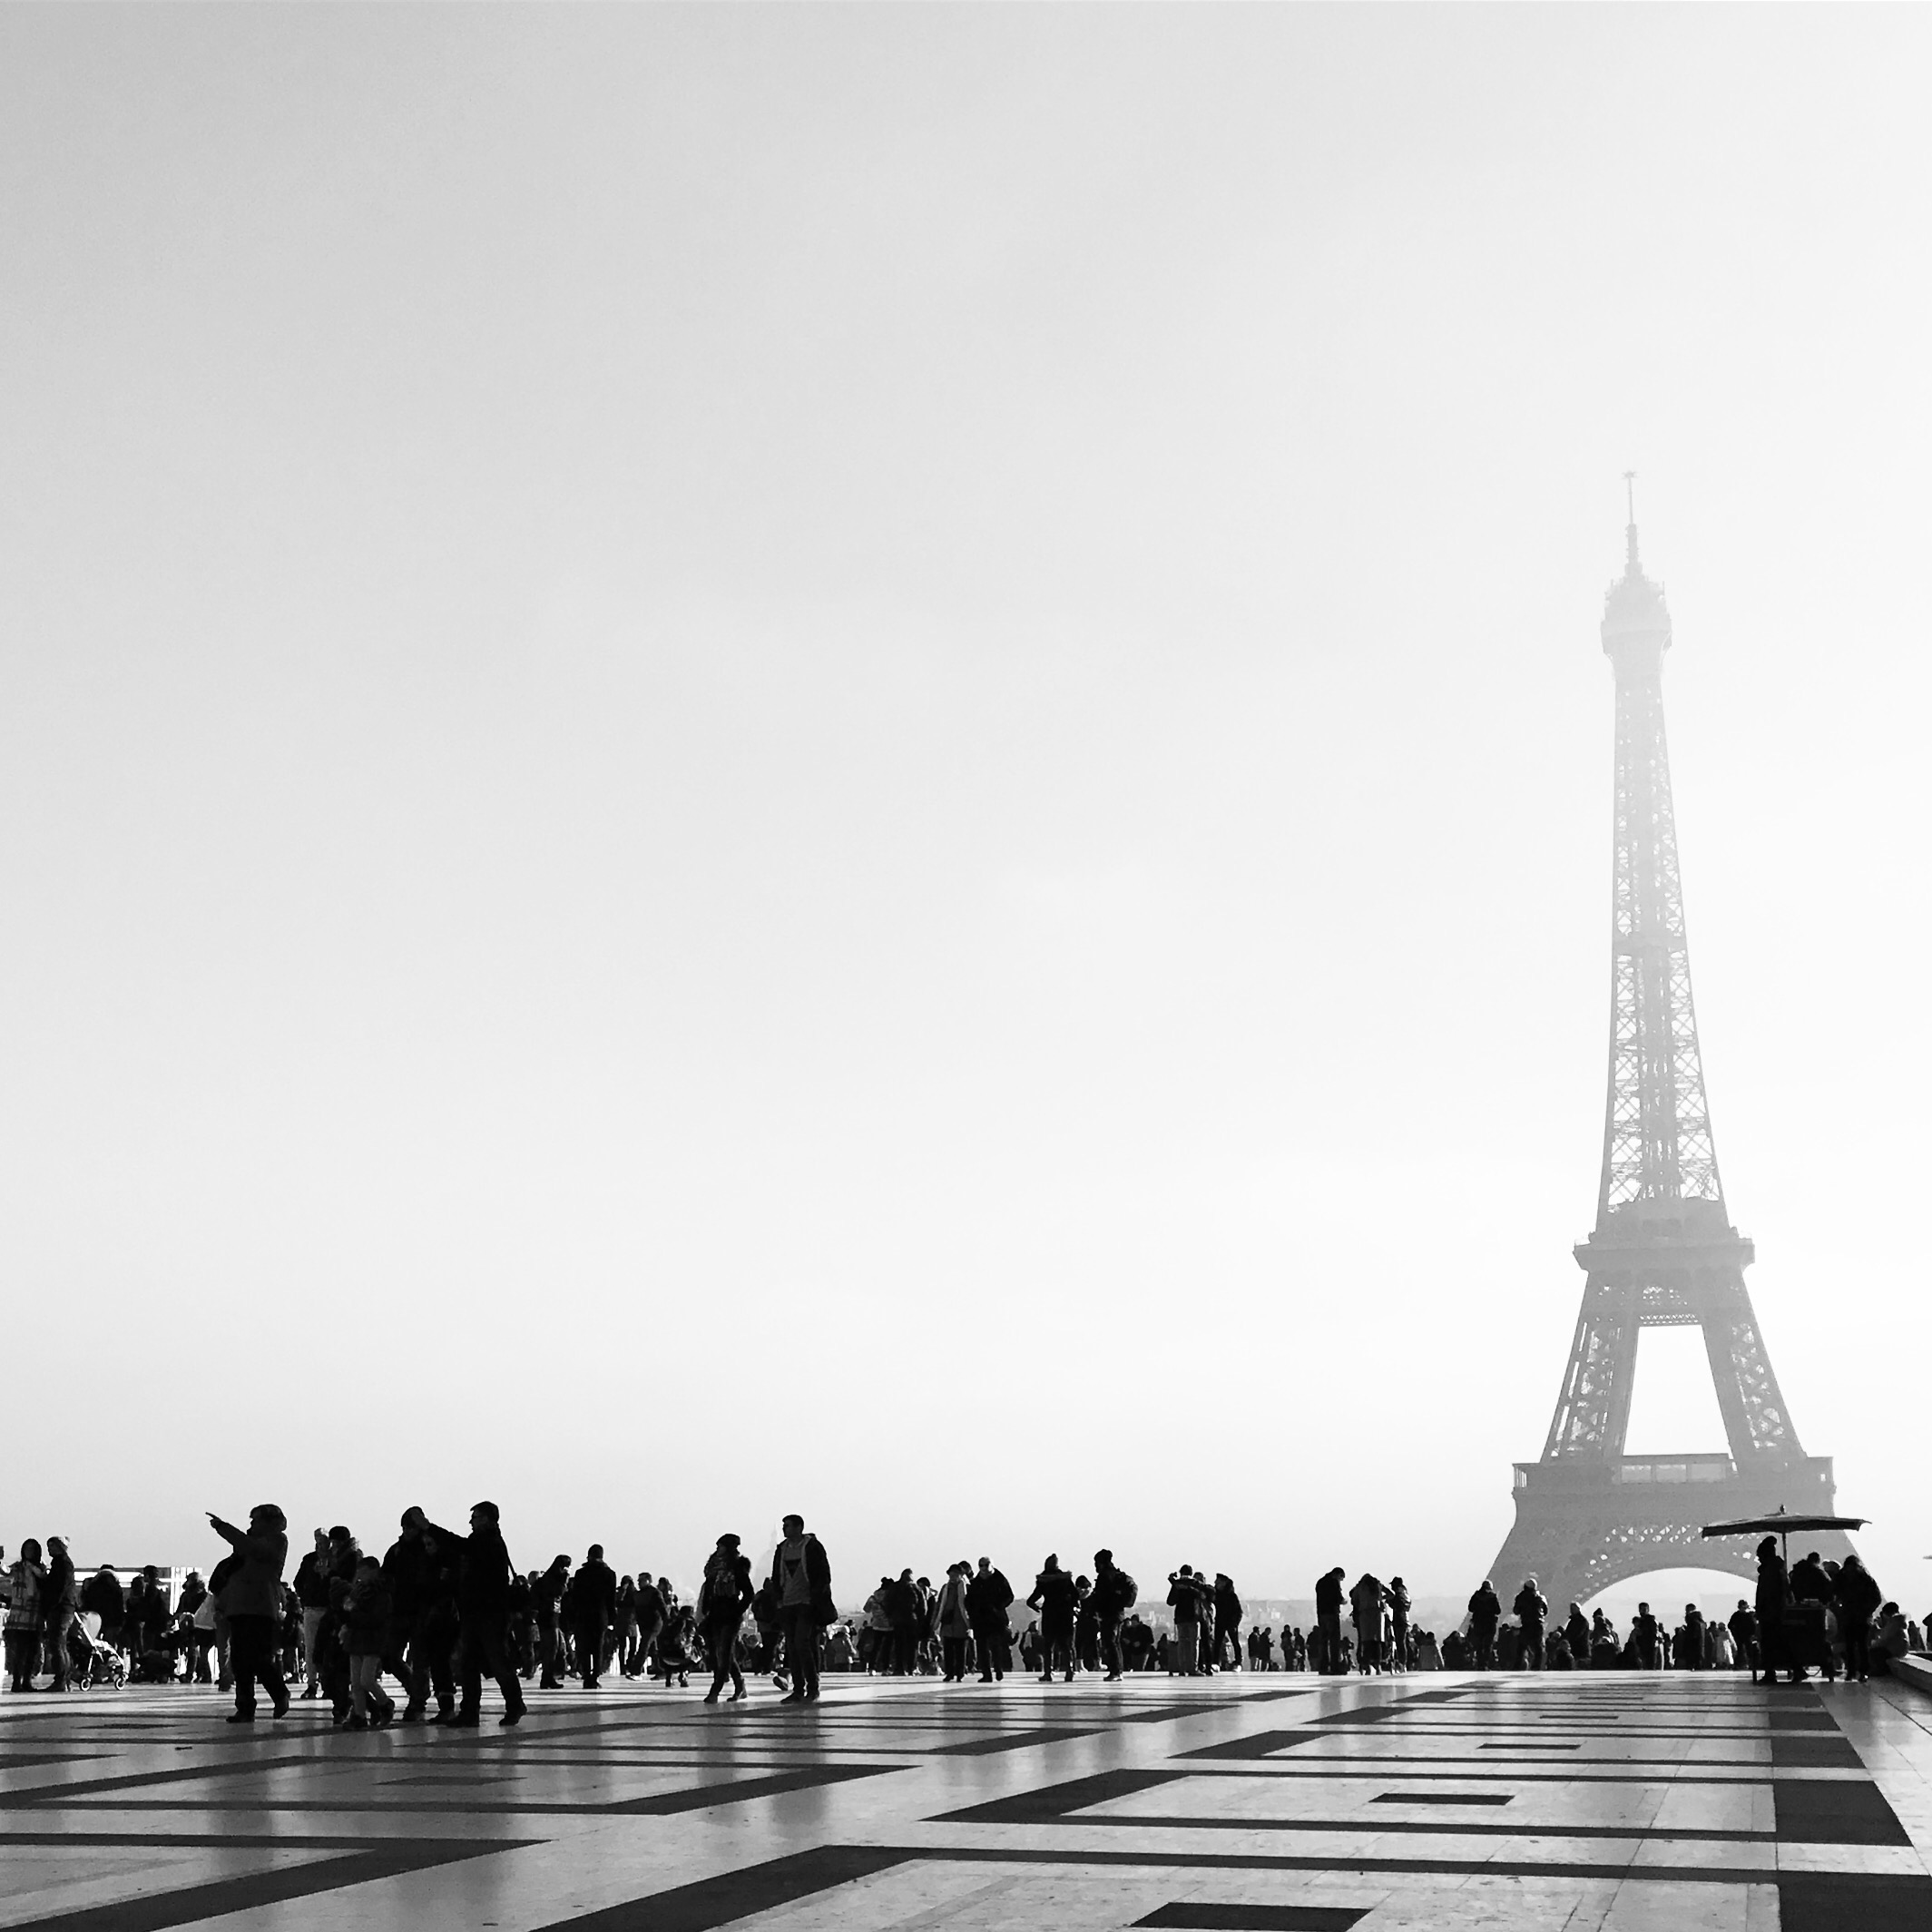 Photo of the Effiel Tower in the distance and people milling about a square in the foreground